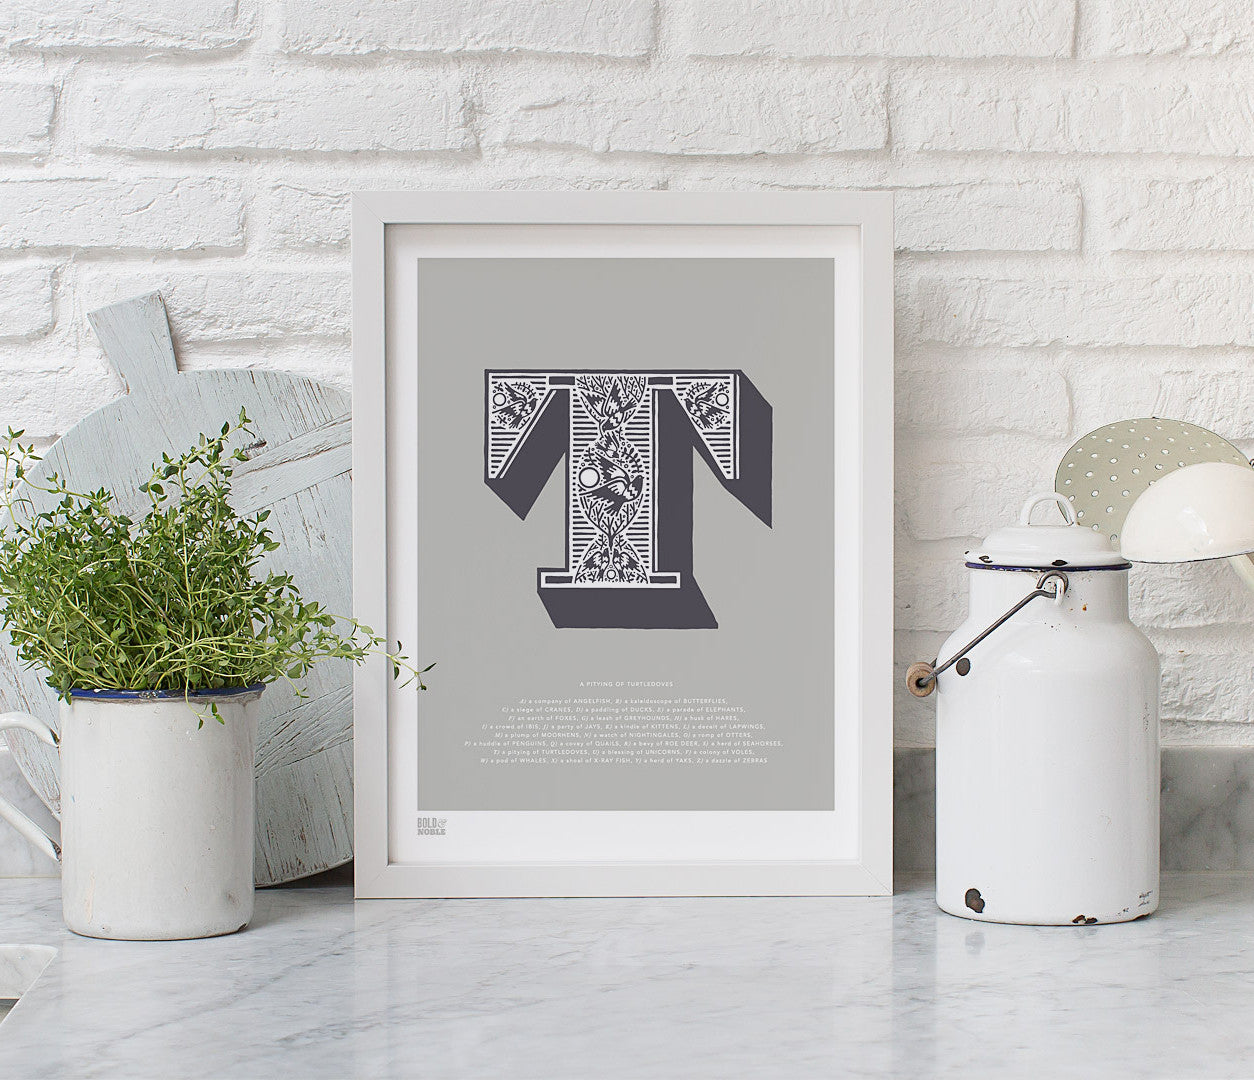 Wall Art Ideas: Economical Screen Prints, Illustrated Letter T printed in putty grey